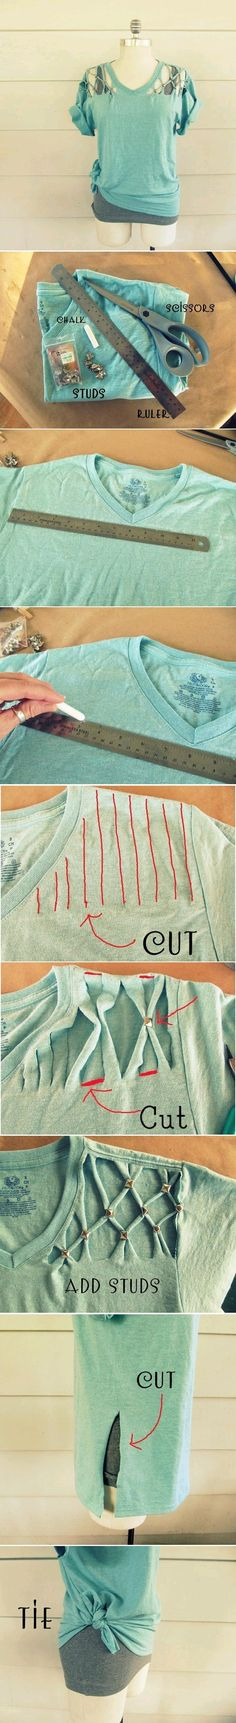 DIY Cool Studded T-Shirt!